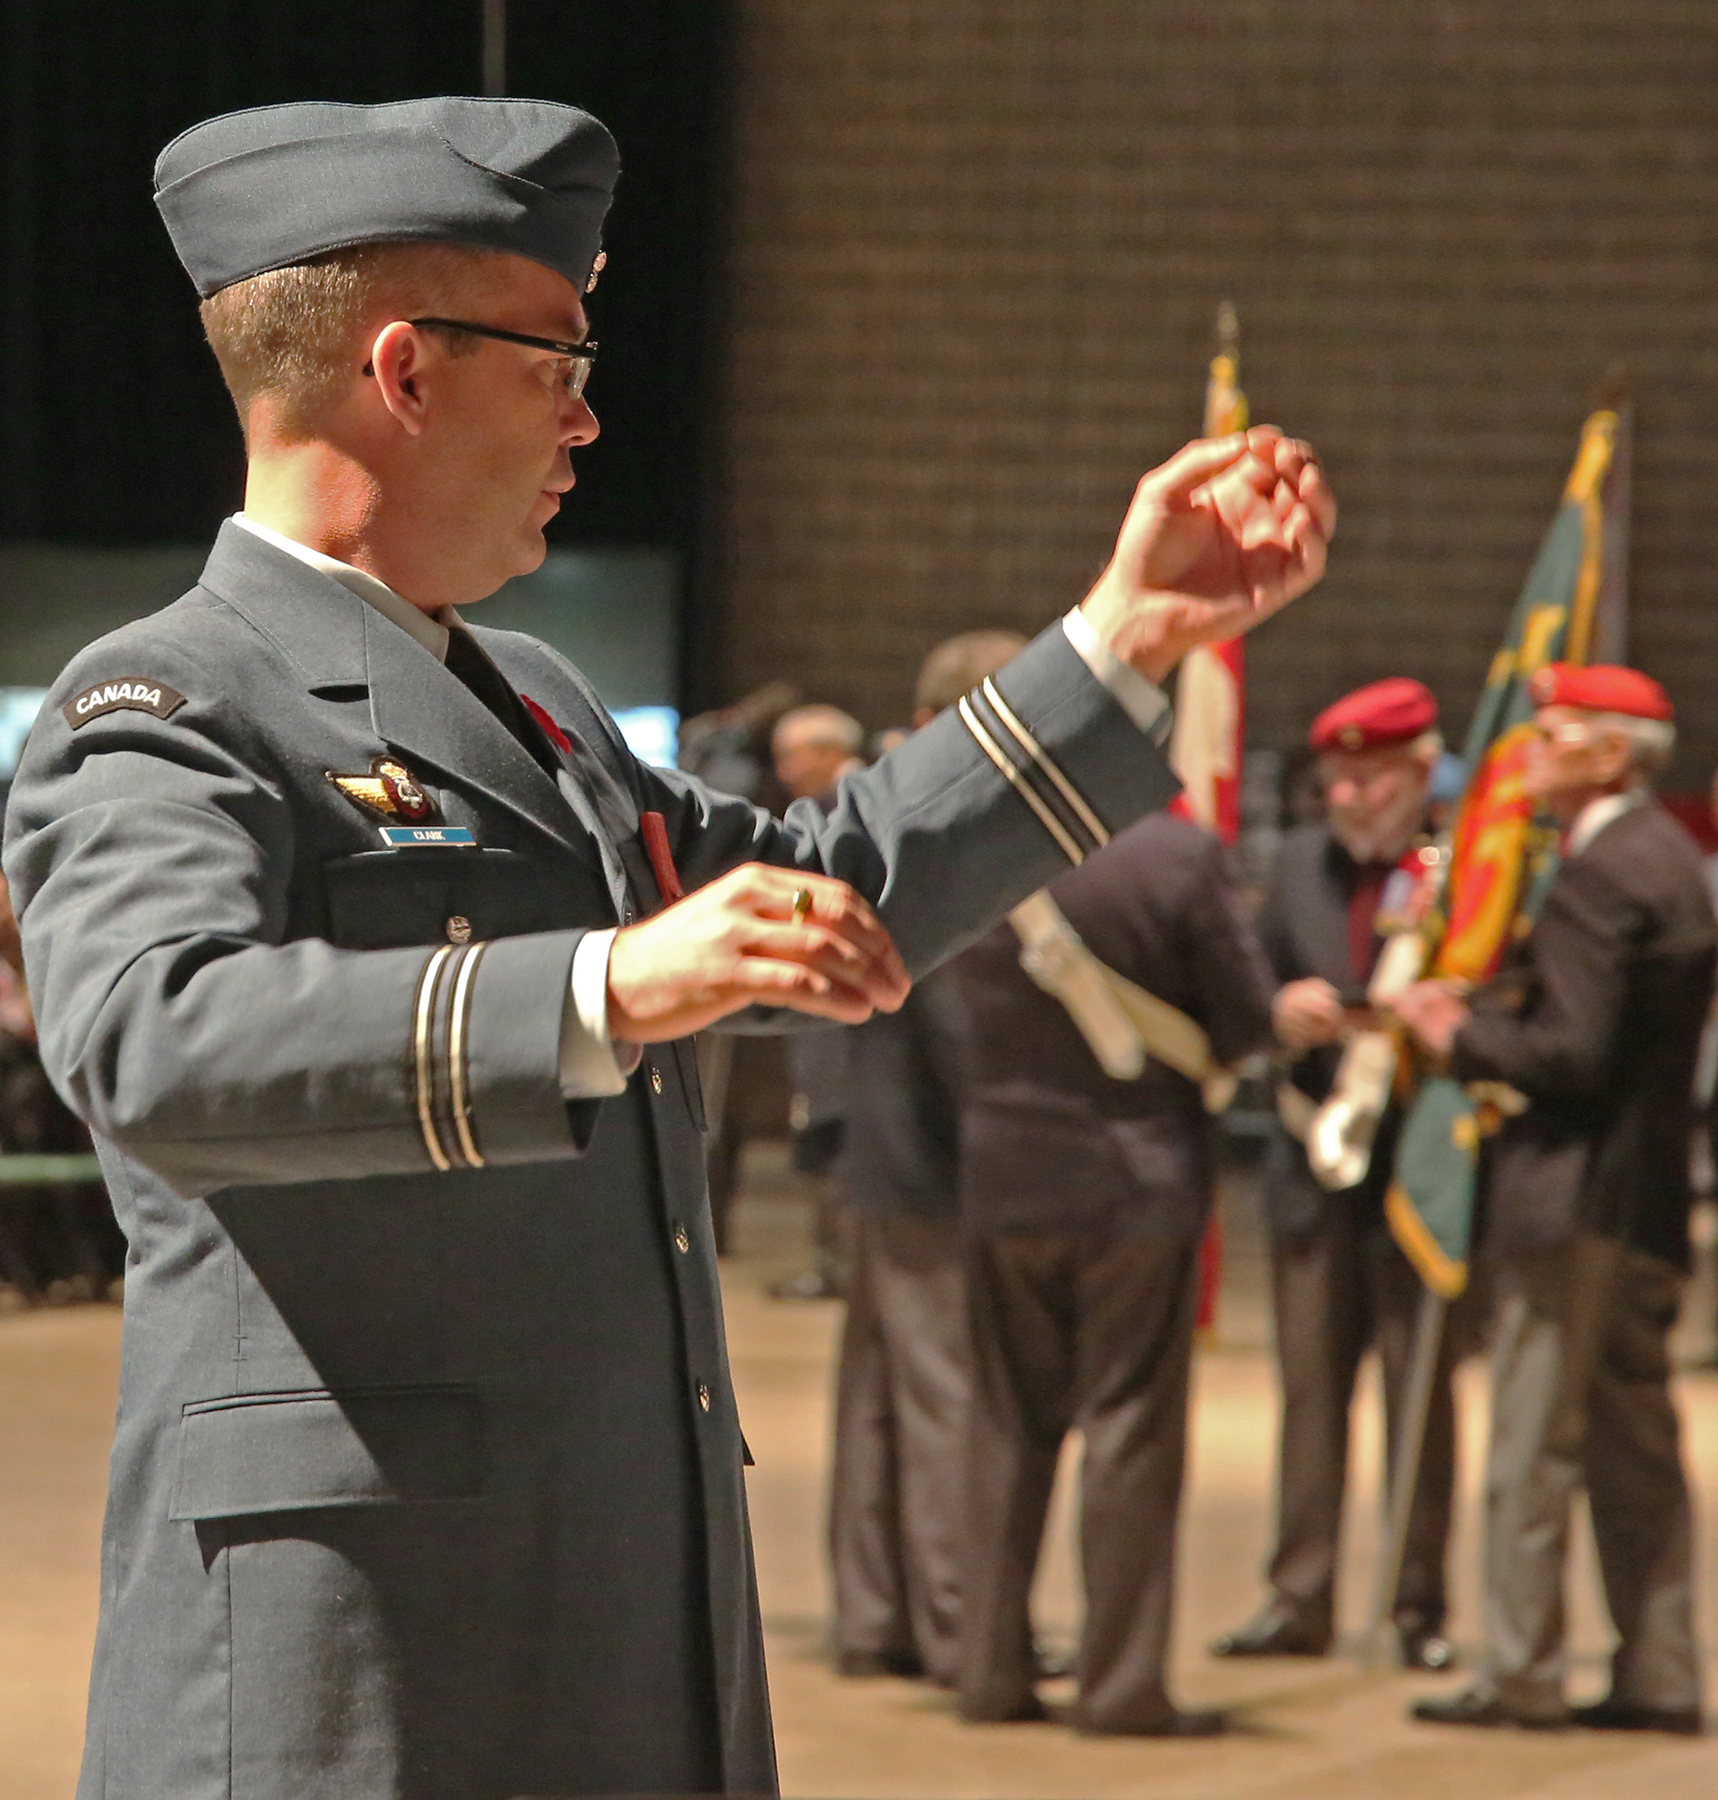 Captain Matthew Clark, commanding officer and director of music for the Royal Canadian Air Force Band, warms up the band before a November 11, 2016, Remembrance Day ceremony. PHOTO: Dona Neves